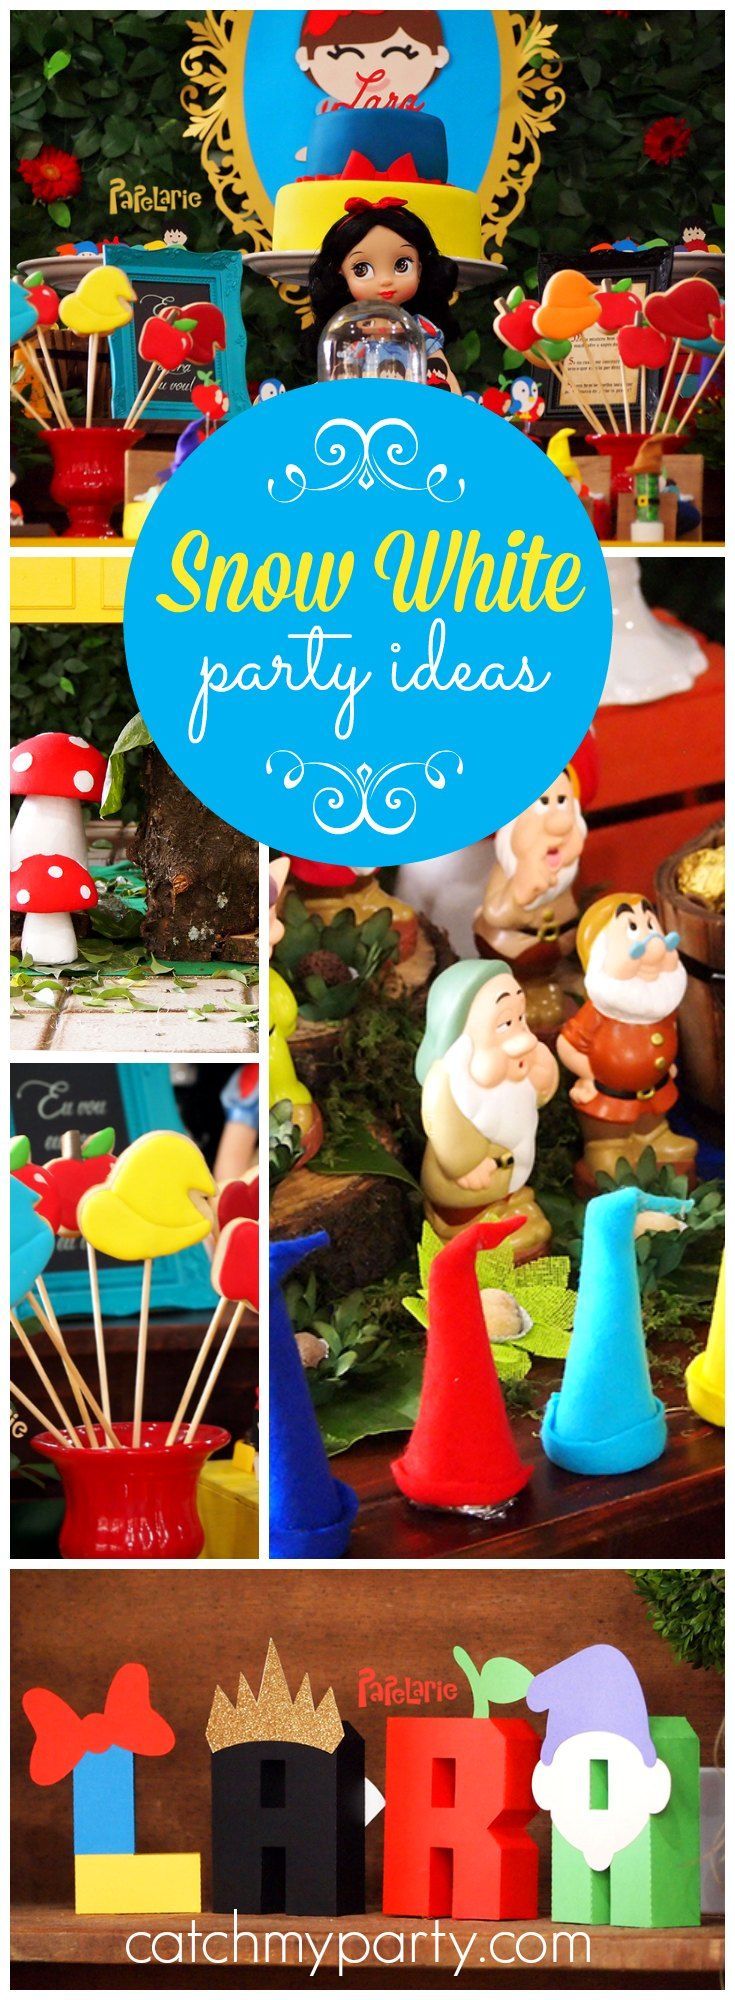 What an incredibly detailed Snow White birthday party! See more party ideas at Catchmyparty.com!